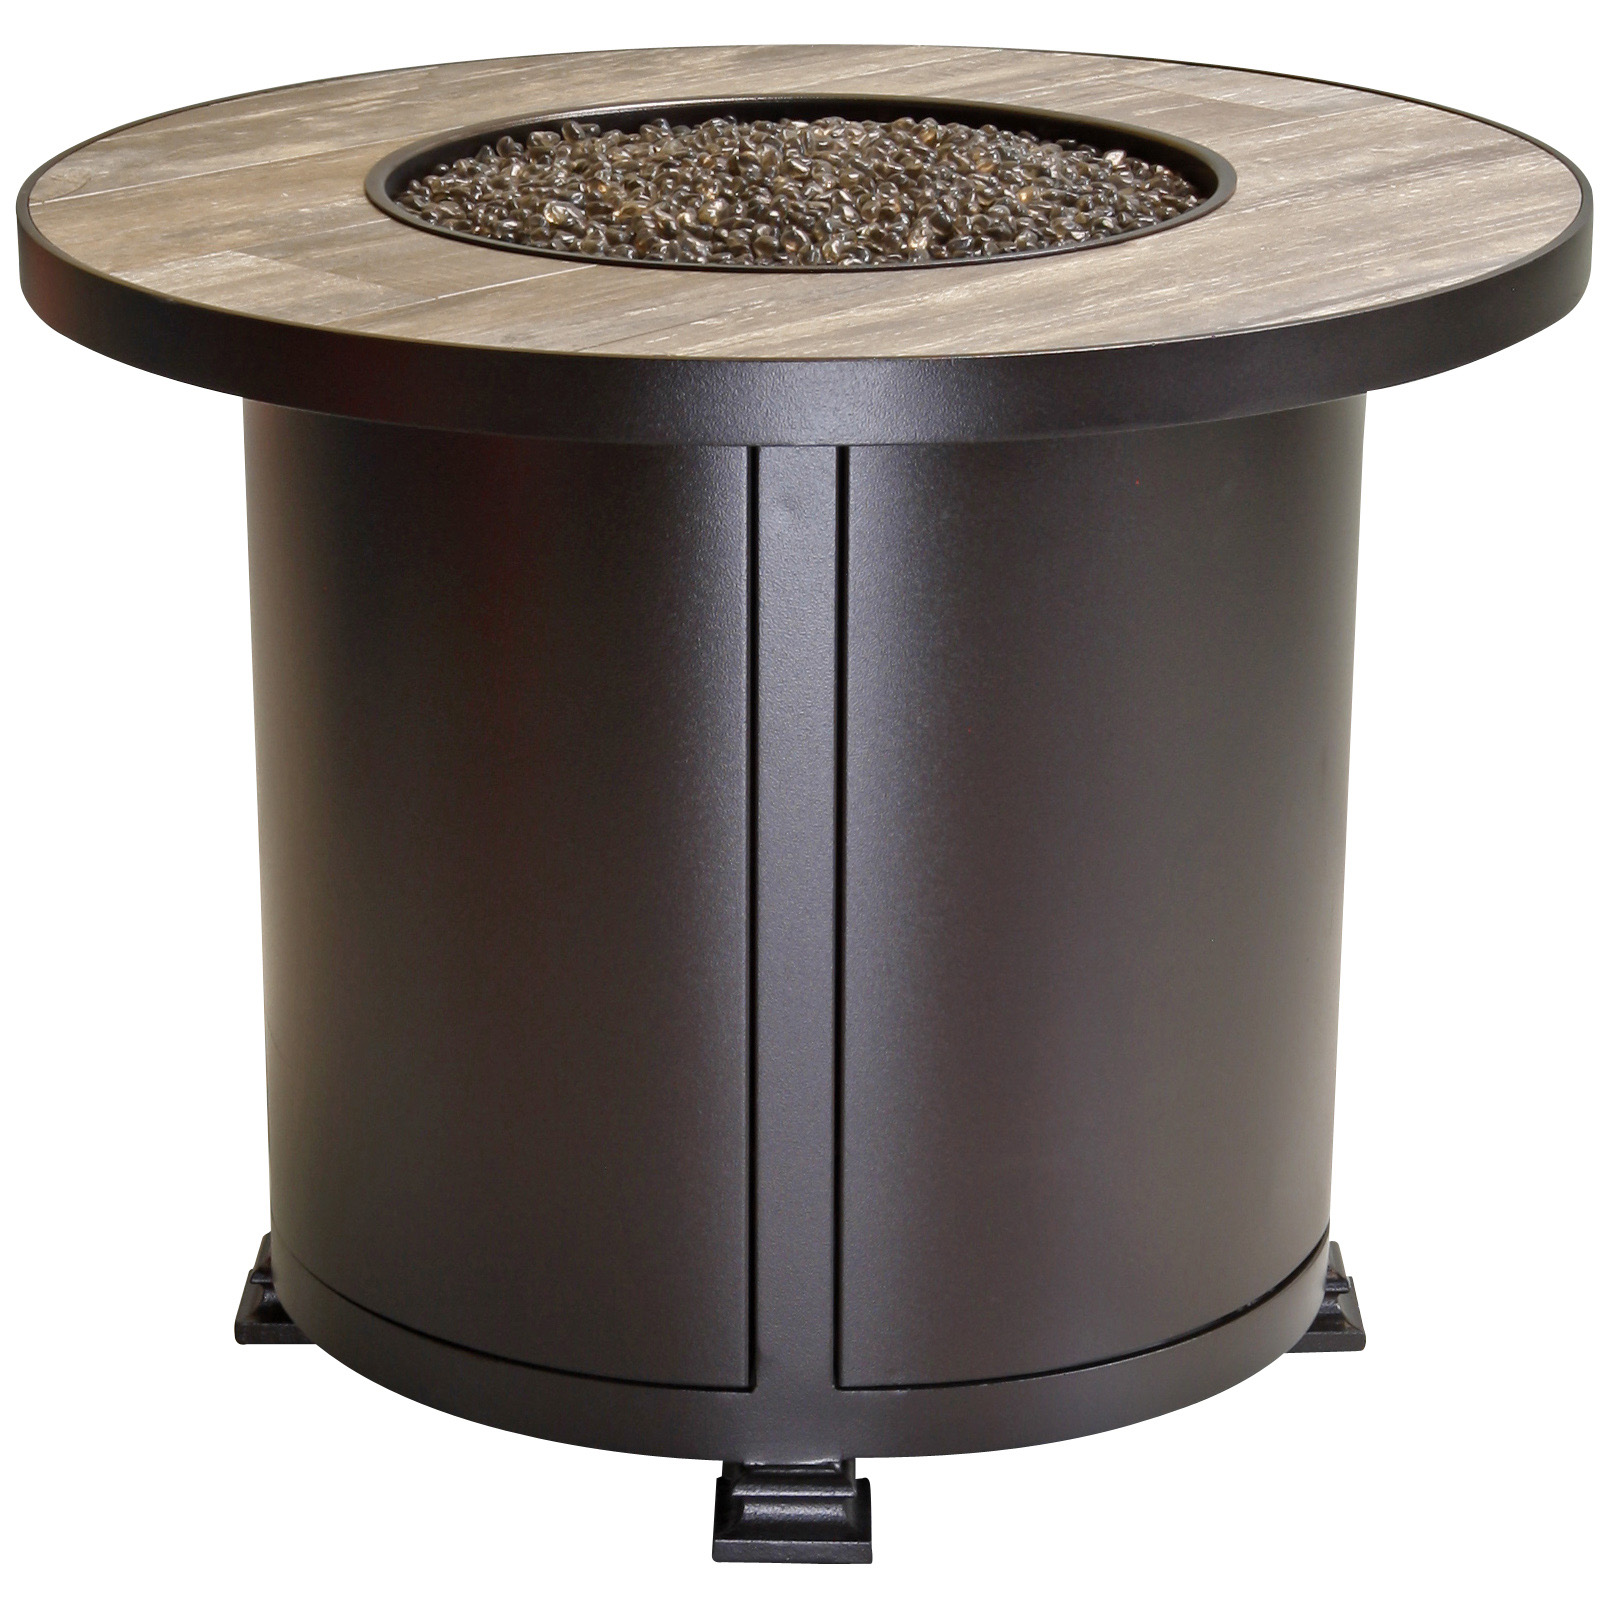 ow lee santorini rectangle chat height fire pit 30 x 50 51 09a